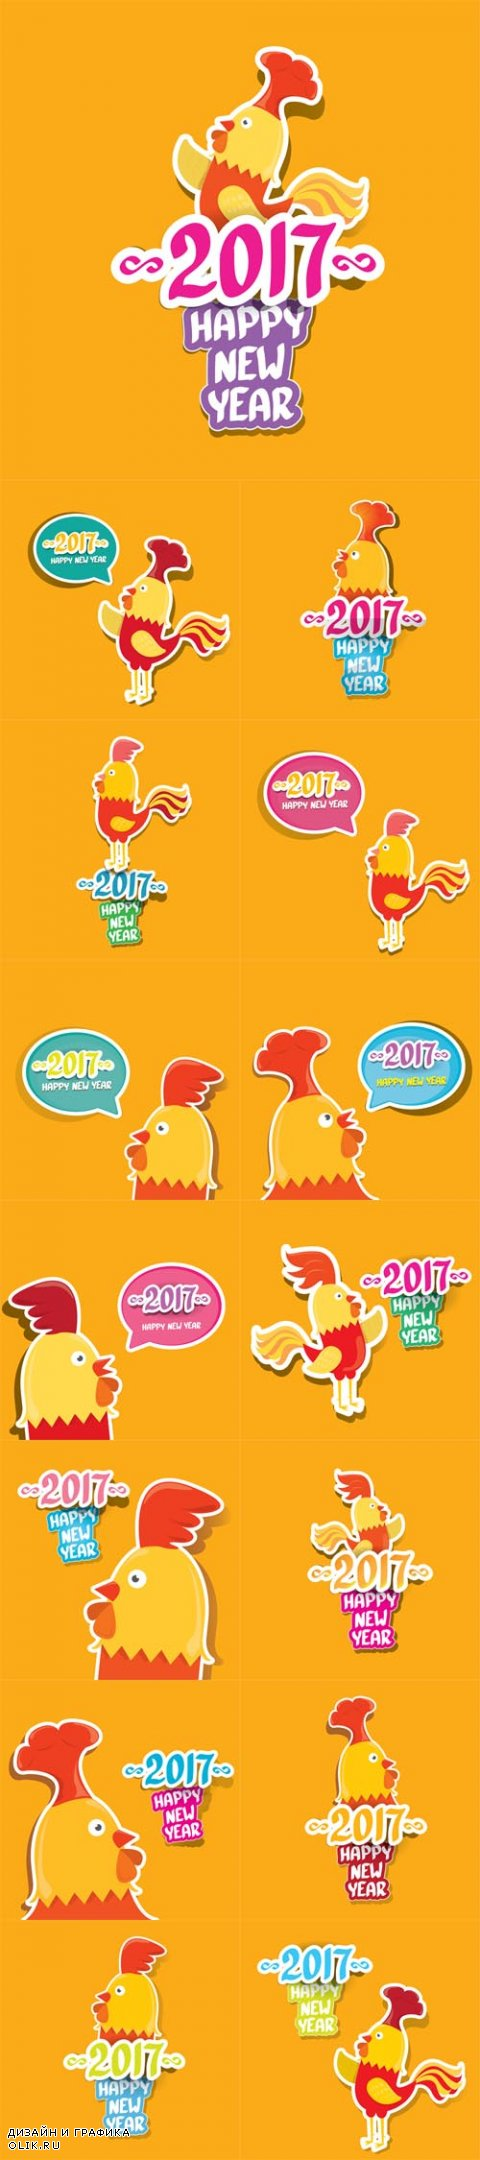 Vector New Year 2017 with Cartoon Funny Rooster 2